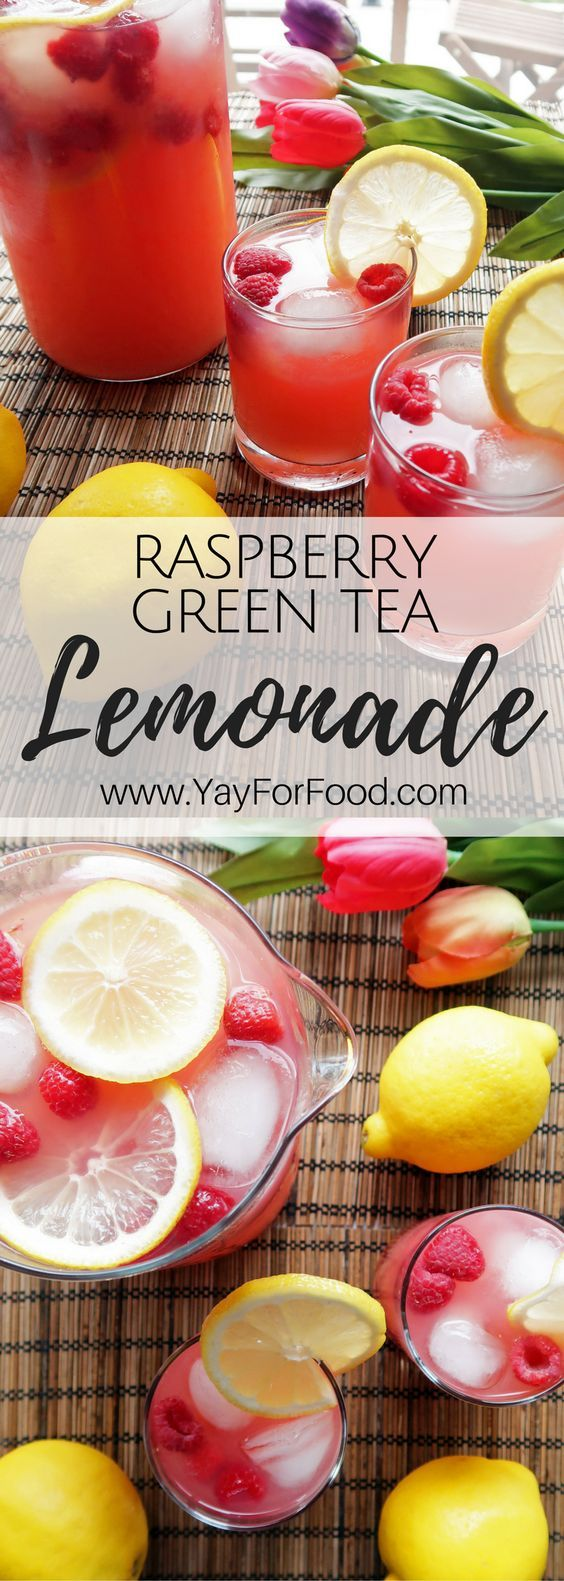 A truly refreshing summer drink! This quick homemade lemonade is combined with raspberries and green tea to give it a wonderful sweet and tart flavour!  vegan | gluten-free | beverage | non-alcoholic | bbq drinks recipes |